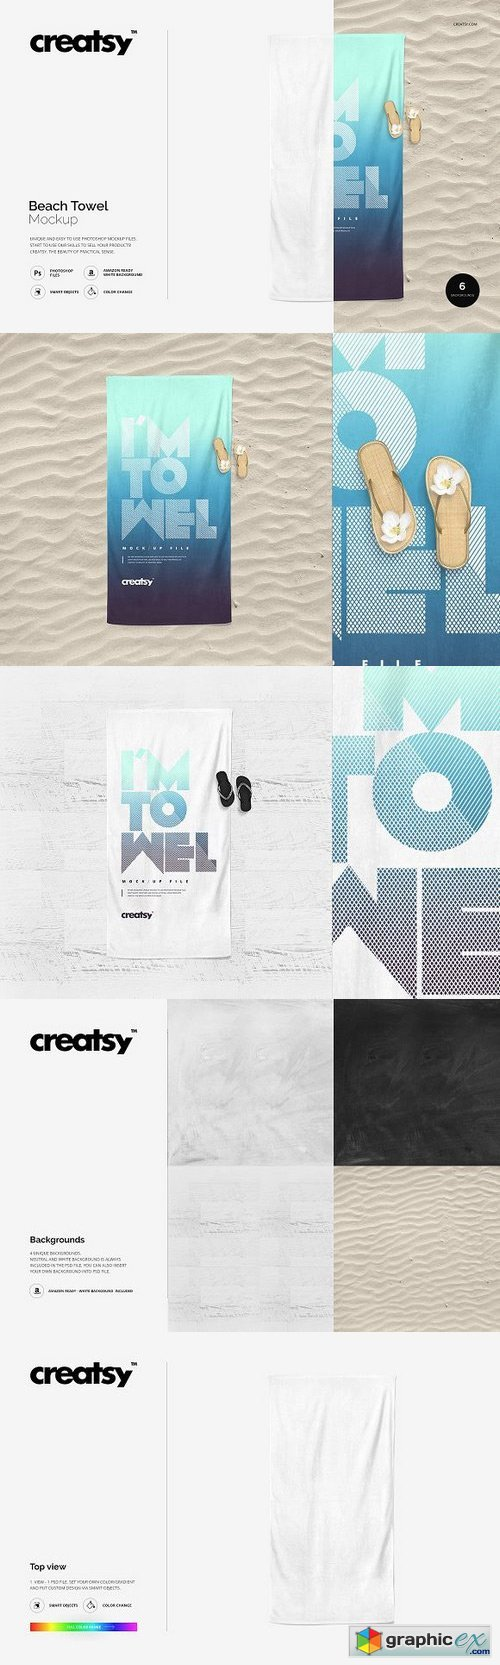 Beach Towel Mockup 1164224